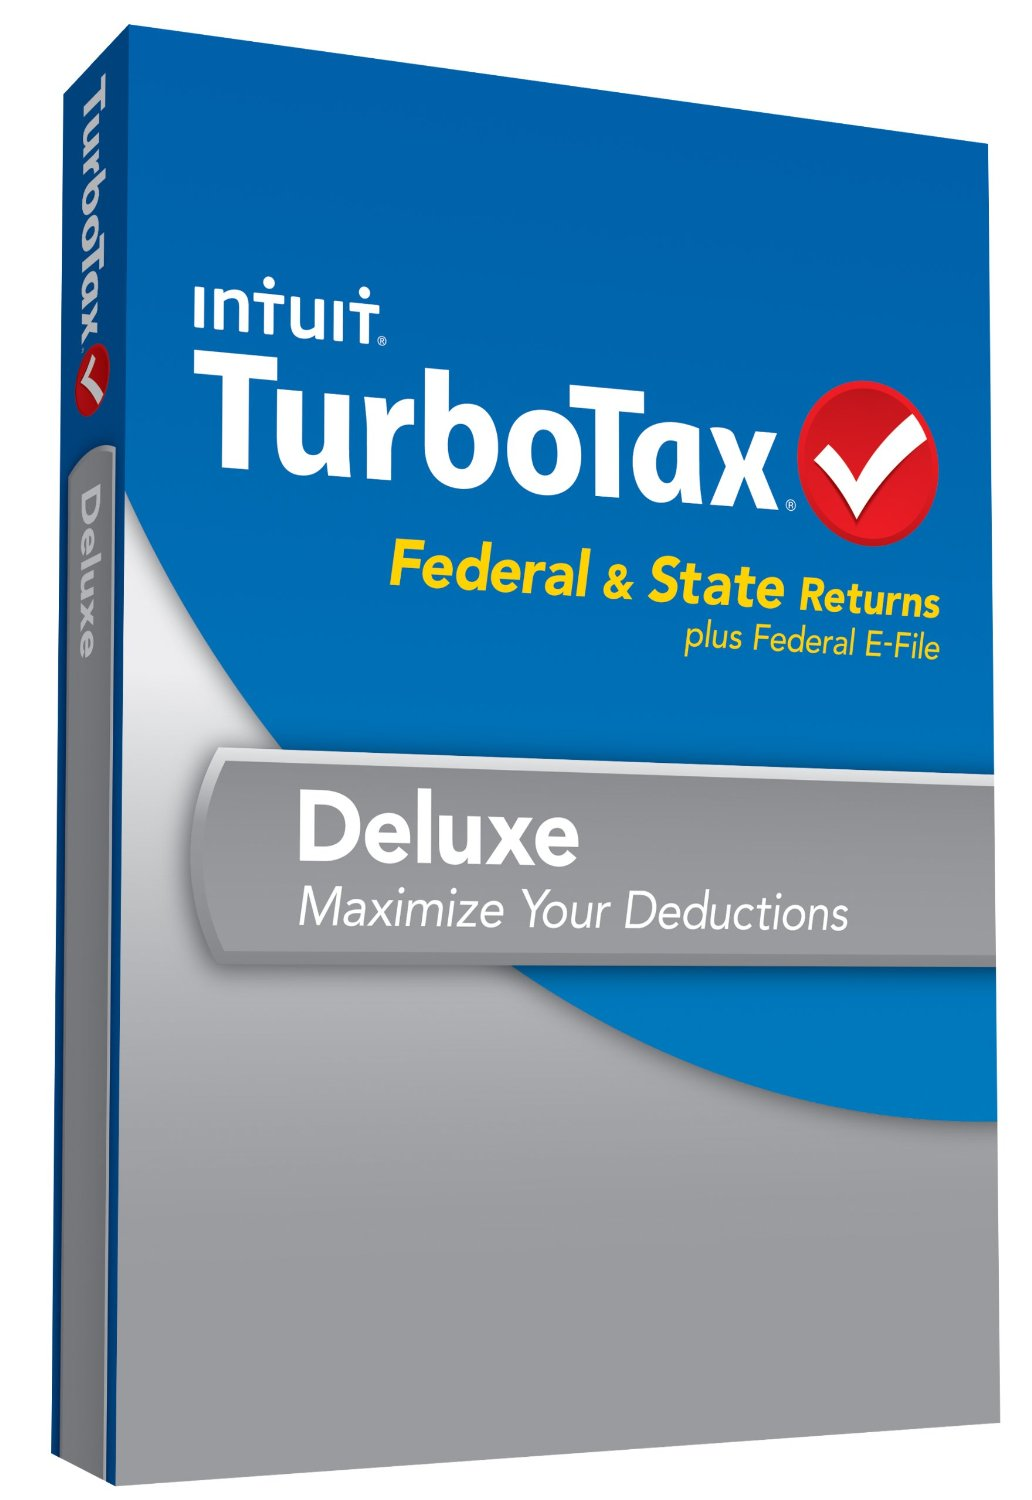 Turbotax 2018 deluxe fed + efile + state (mac) – download version.